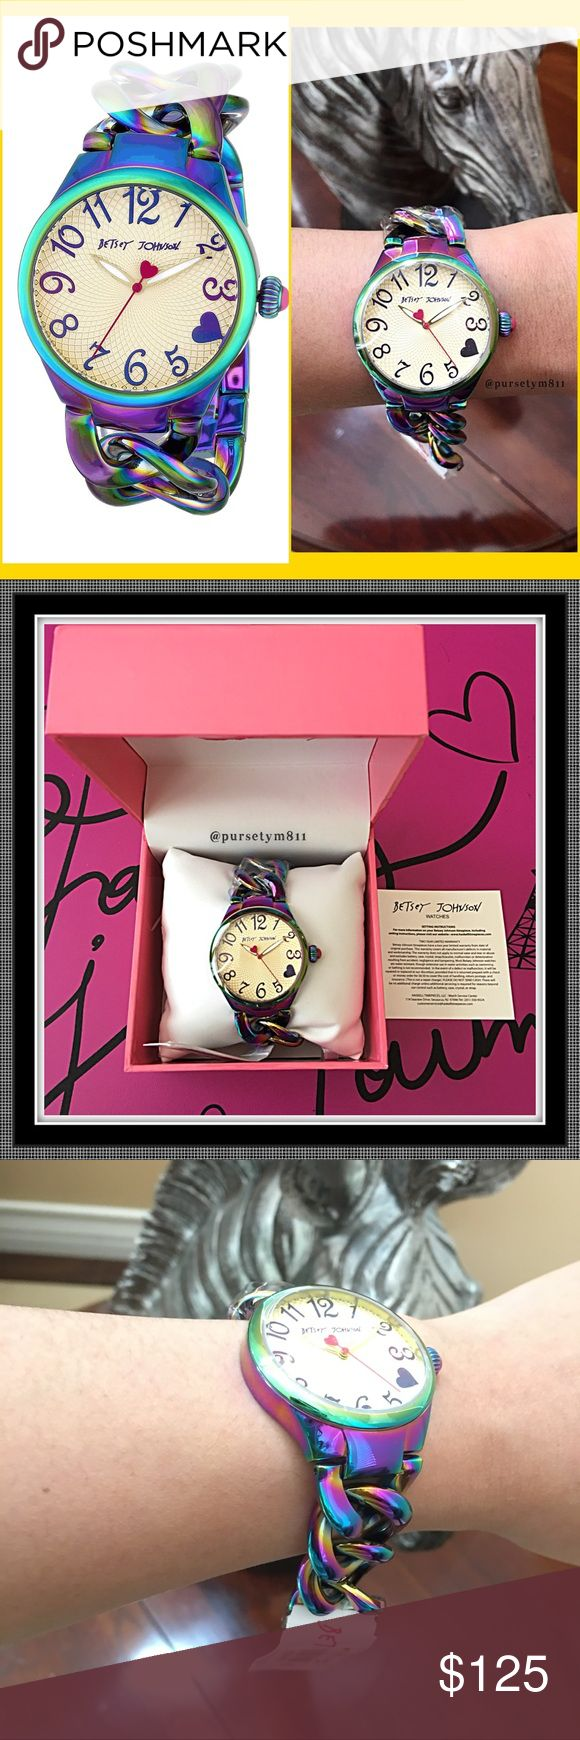 Authentic Betsey Johnson Watch Show off the charm and playfulness of the colors of the rainbow, personified w/ this eye-catching Betsey Johnson watch. A multicolor, iridescent case and round bezel beautifully offset a light champagne textured dial, set w/ numeral markers. Boasting Quartz movements. New w/ tag and box.  GORGEOUS  No trade ❌ Betsey Johnson Accessories Watches